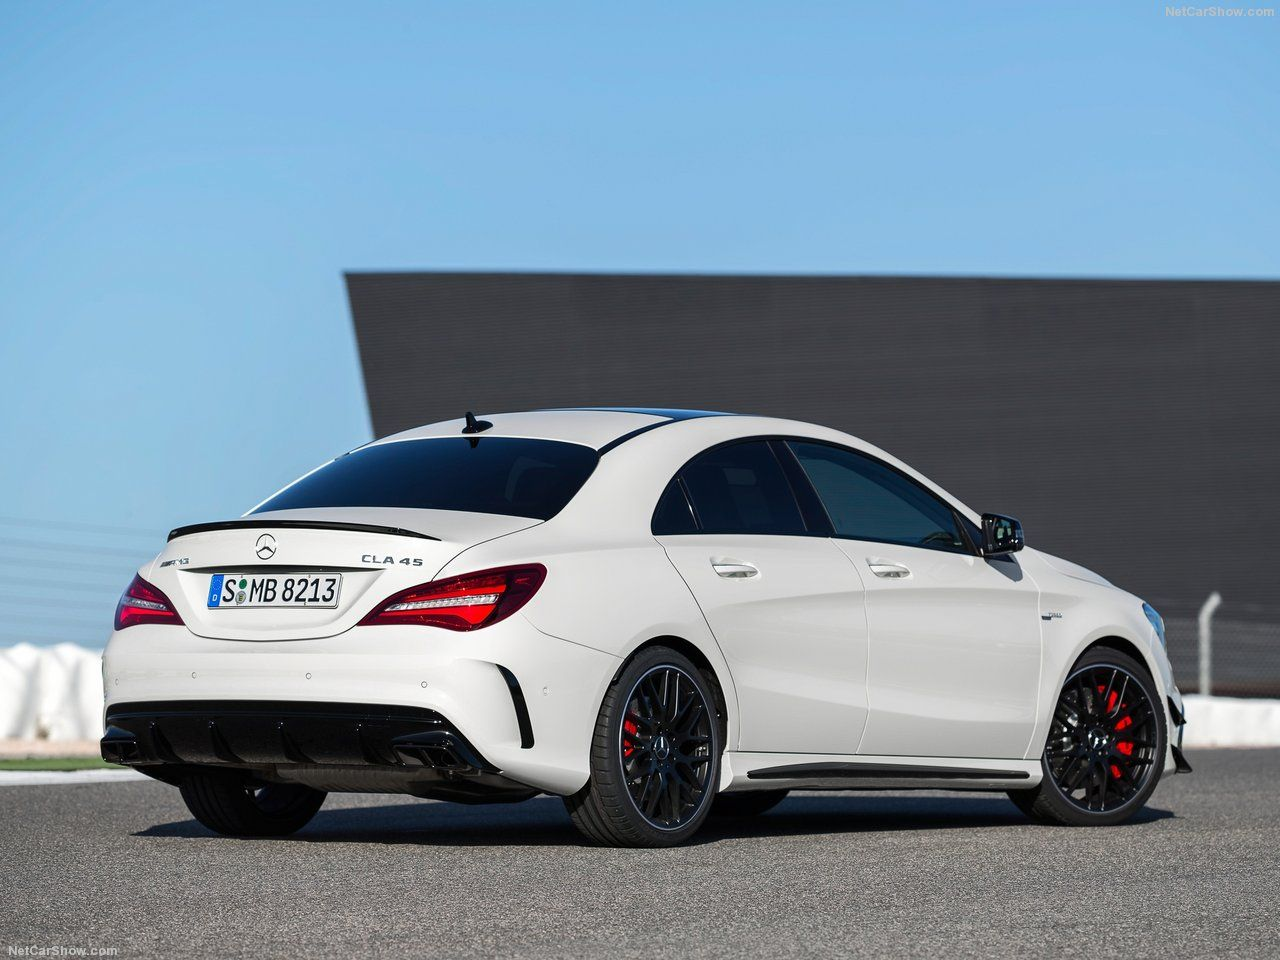 Cla 45 Amg 2017 With Images Mercedes Benz Cla 250 Cla 45